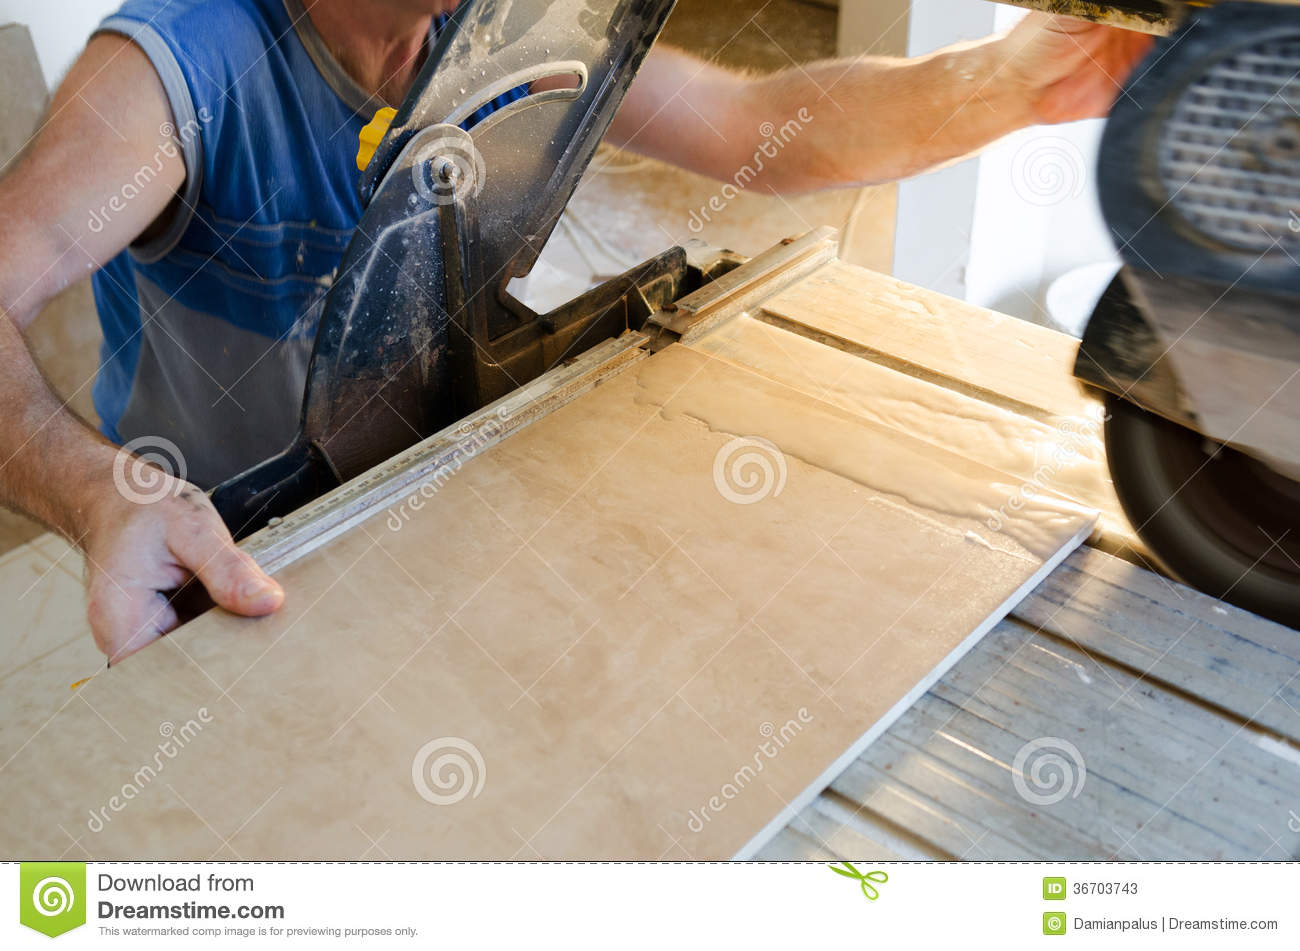 Tile Floor Stock Image Image Of Occupation Skill Cutting 36703743